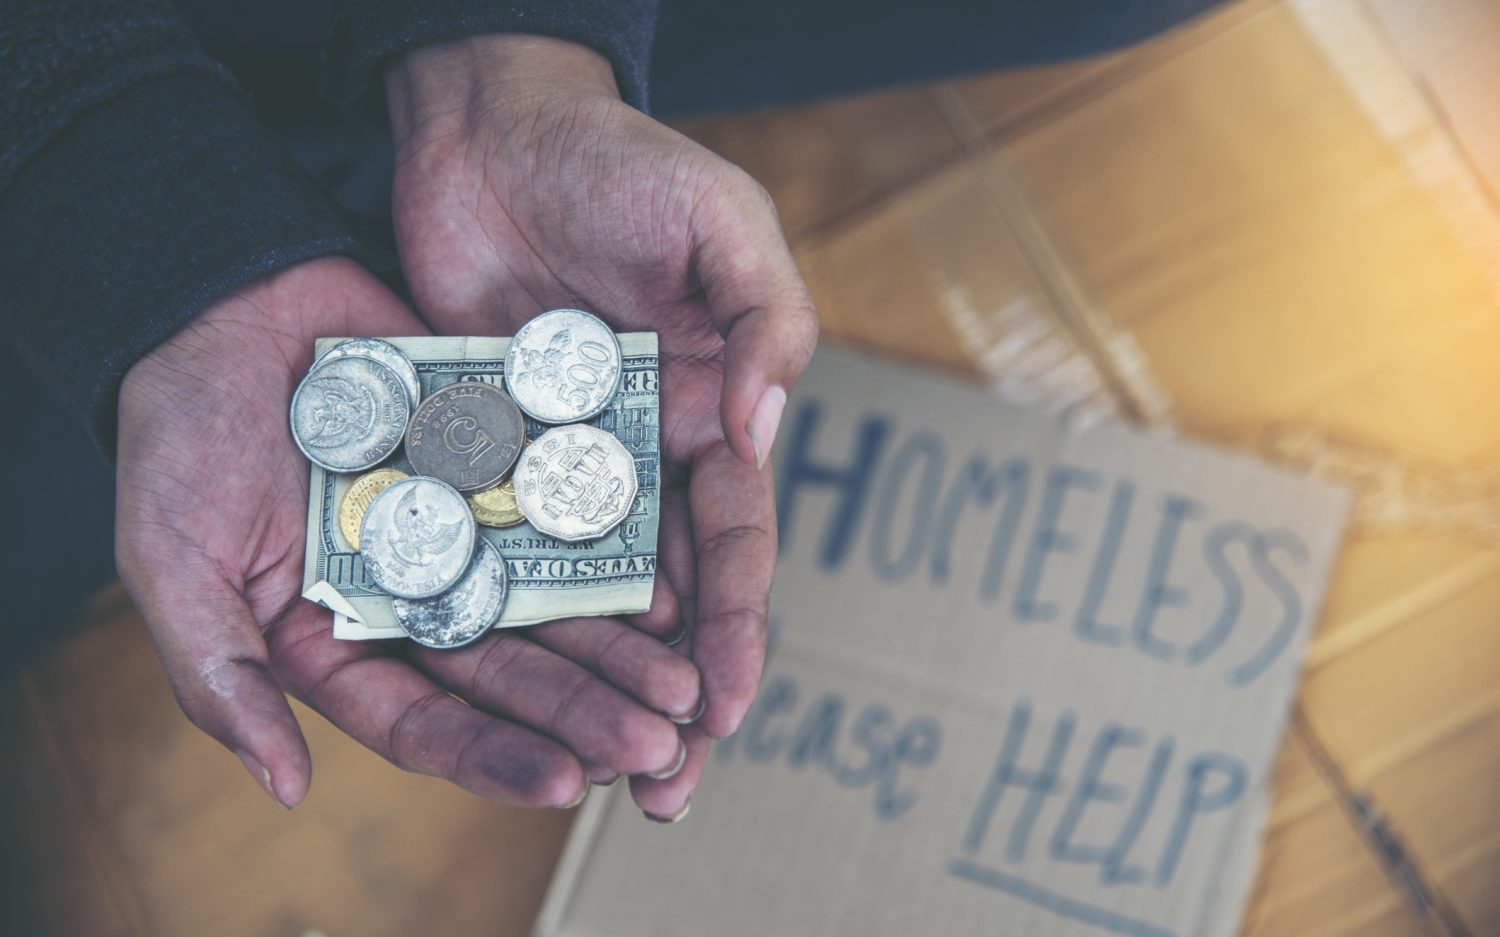 Welfare reform's silver-plated anniversary